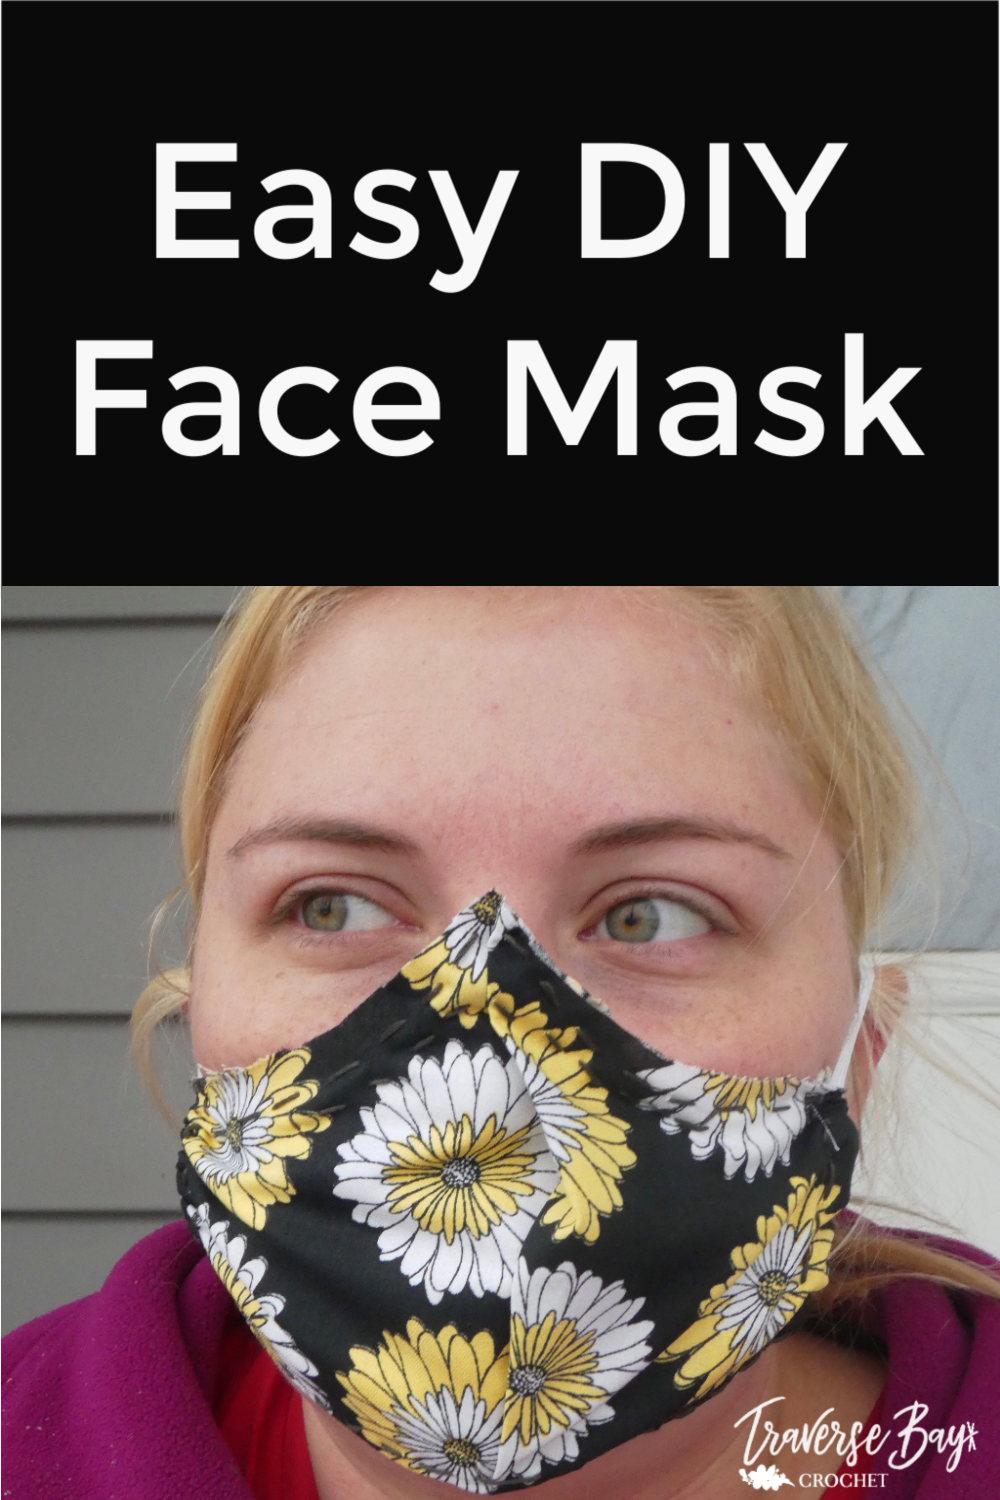 Best Materials and Sewing Pattern for DIY Face Mask, adult